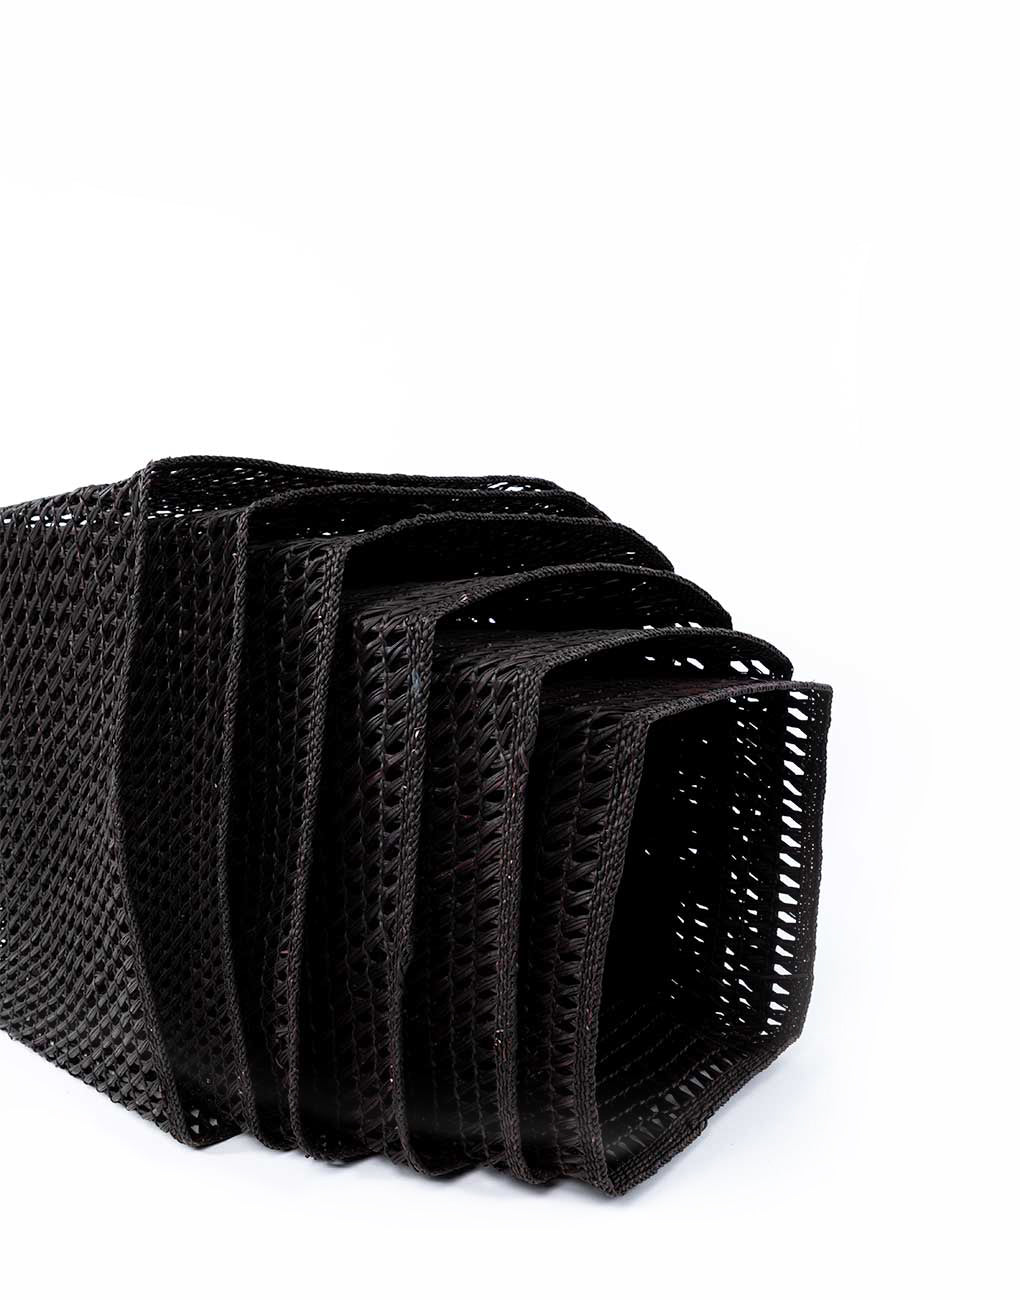 Nesting Square Open Weave Iringa Basket In Black Side View Close Up | The Little Market